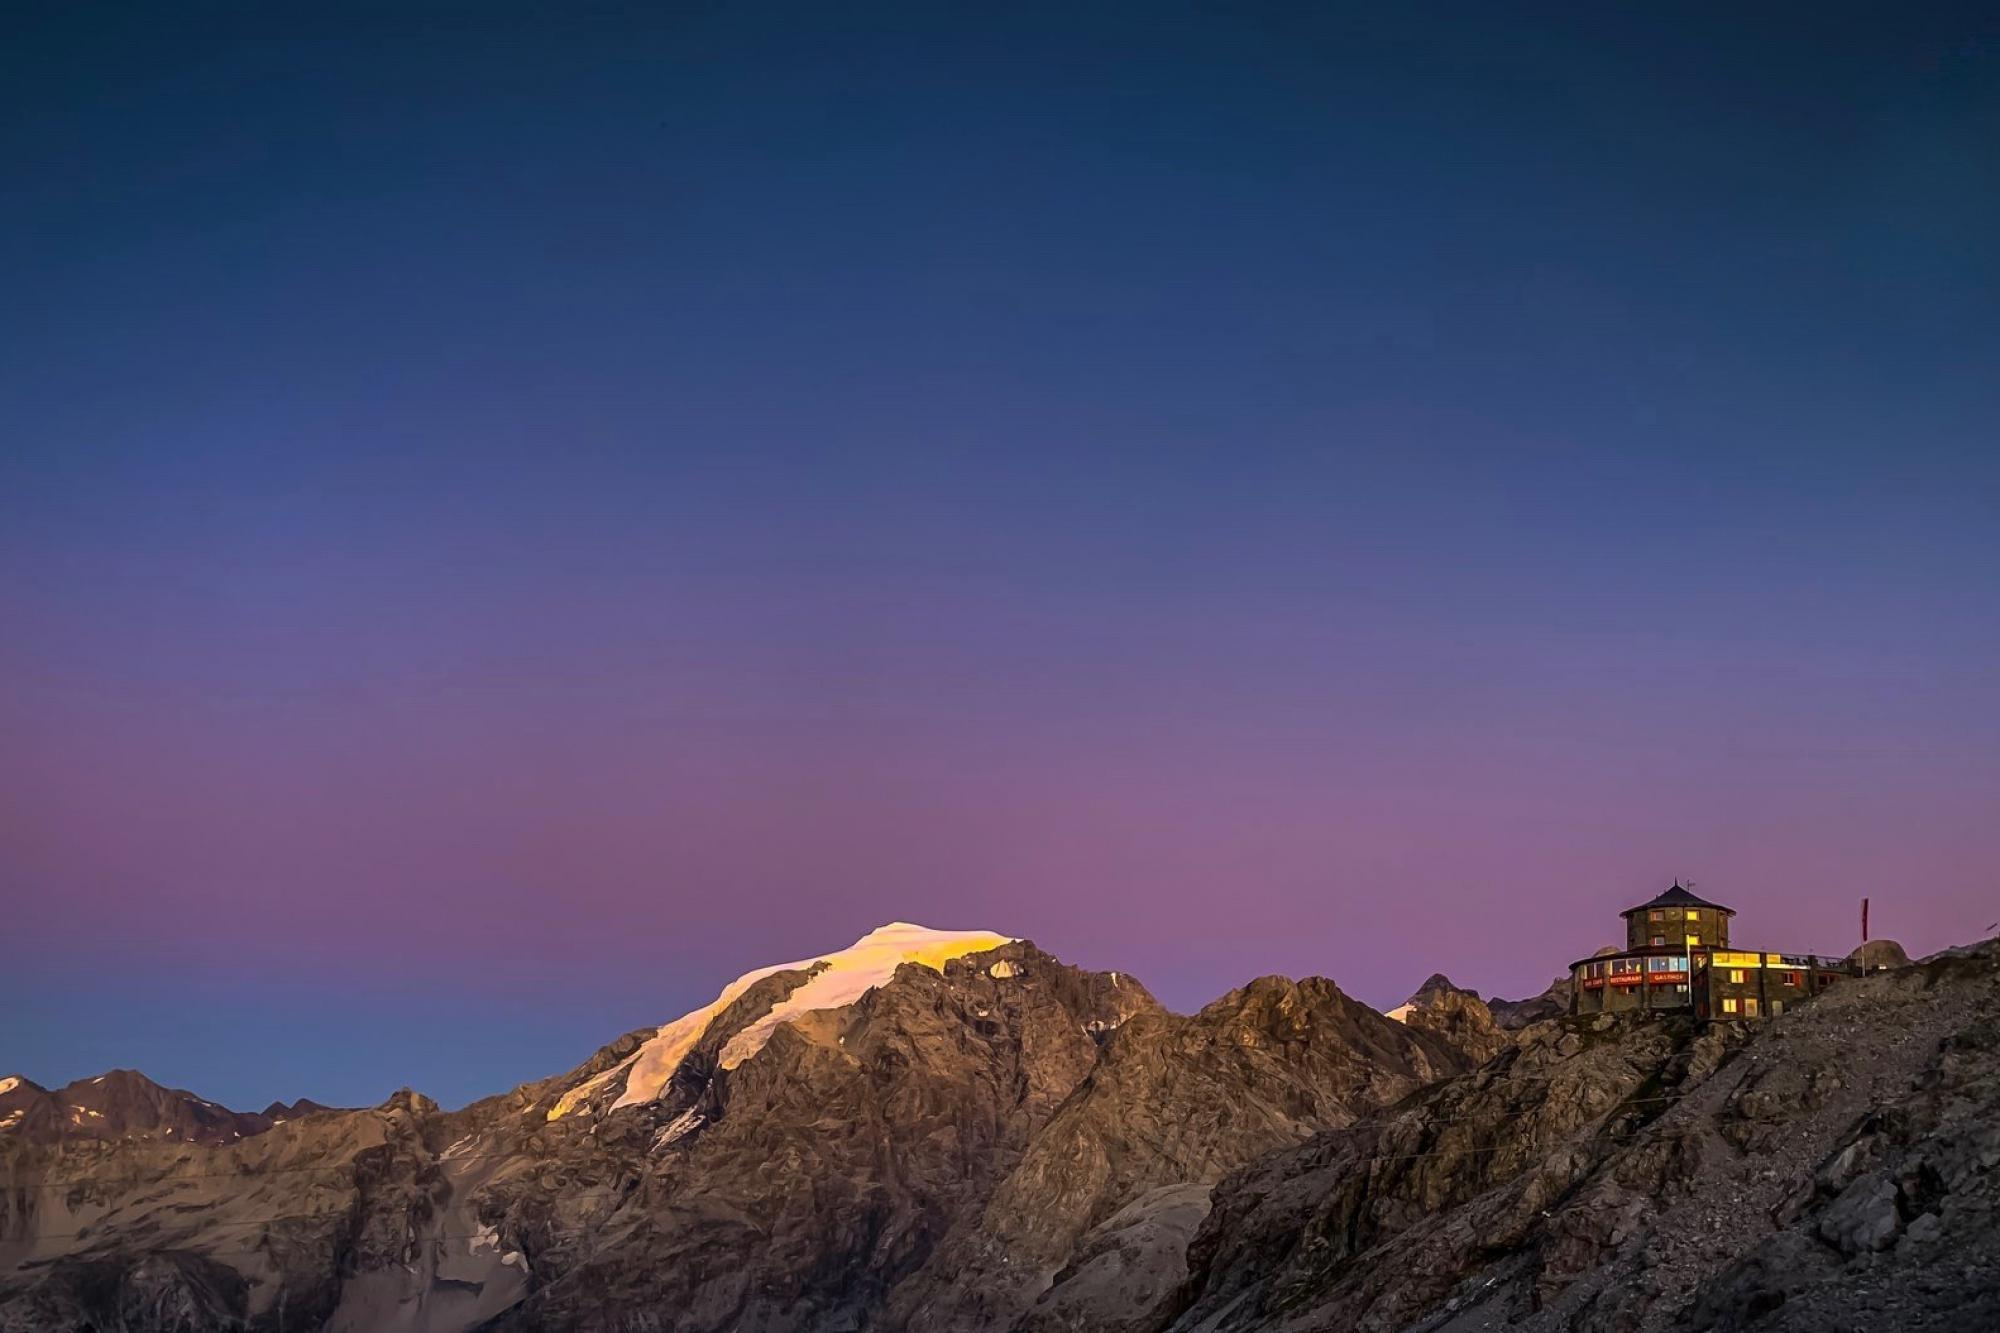 Panoramic view Stelvio Pass - Alpine Hotel Tibet Hut